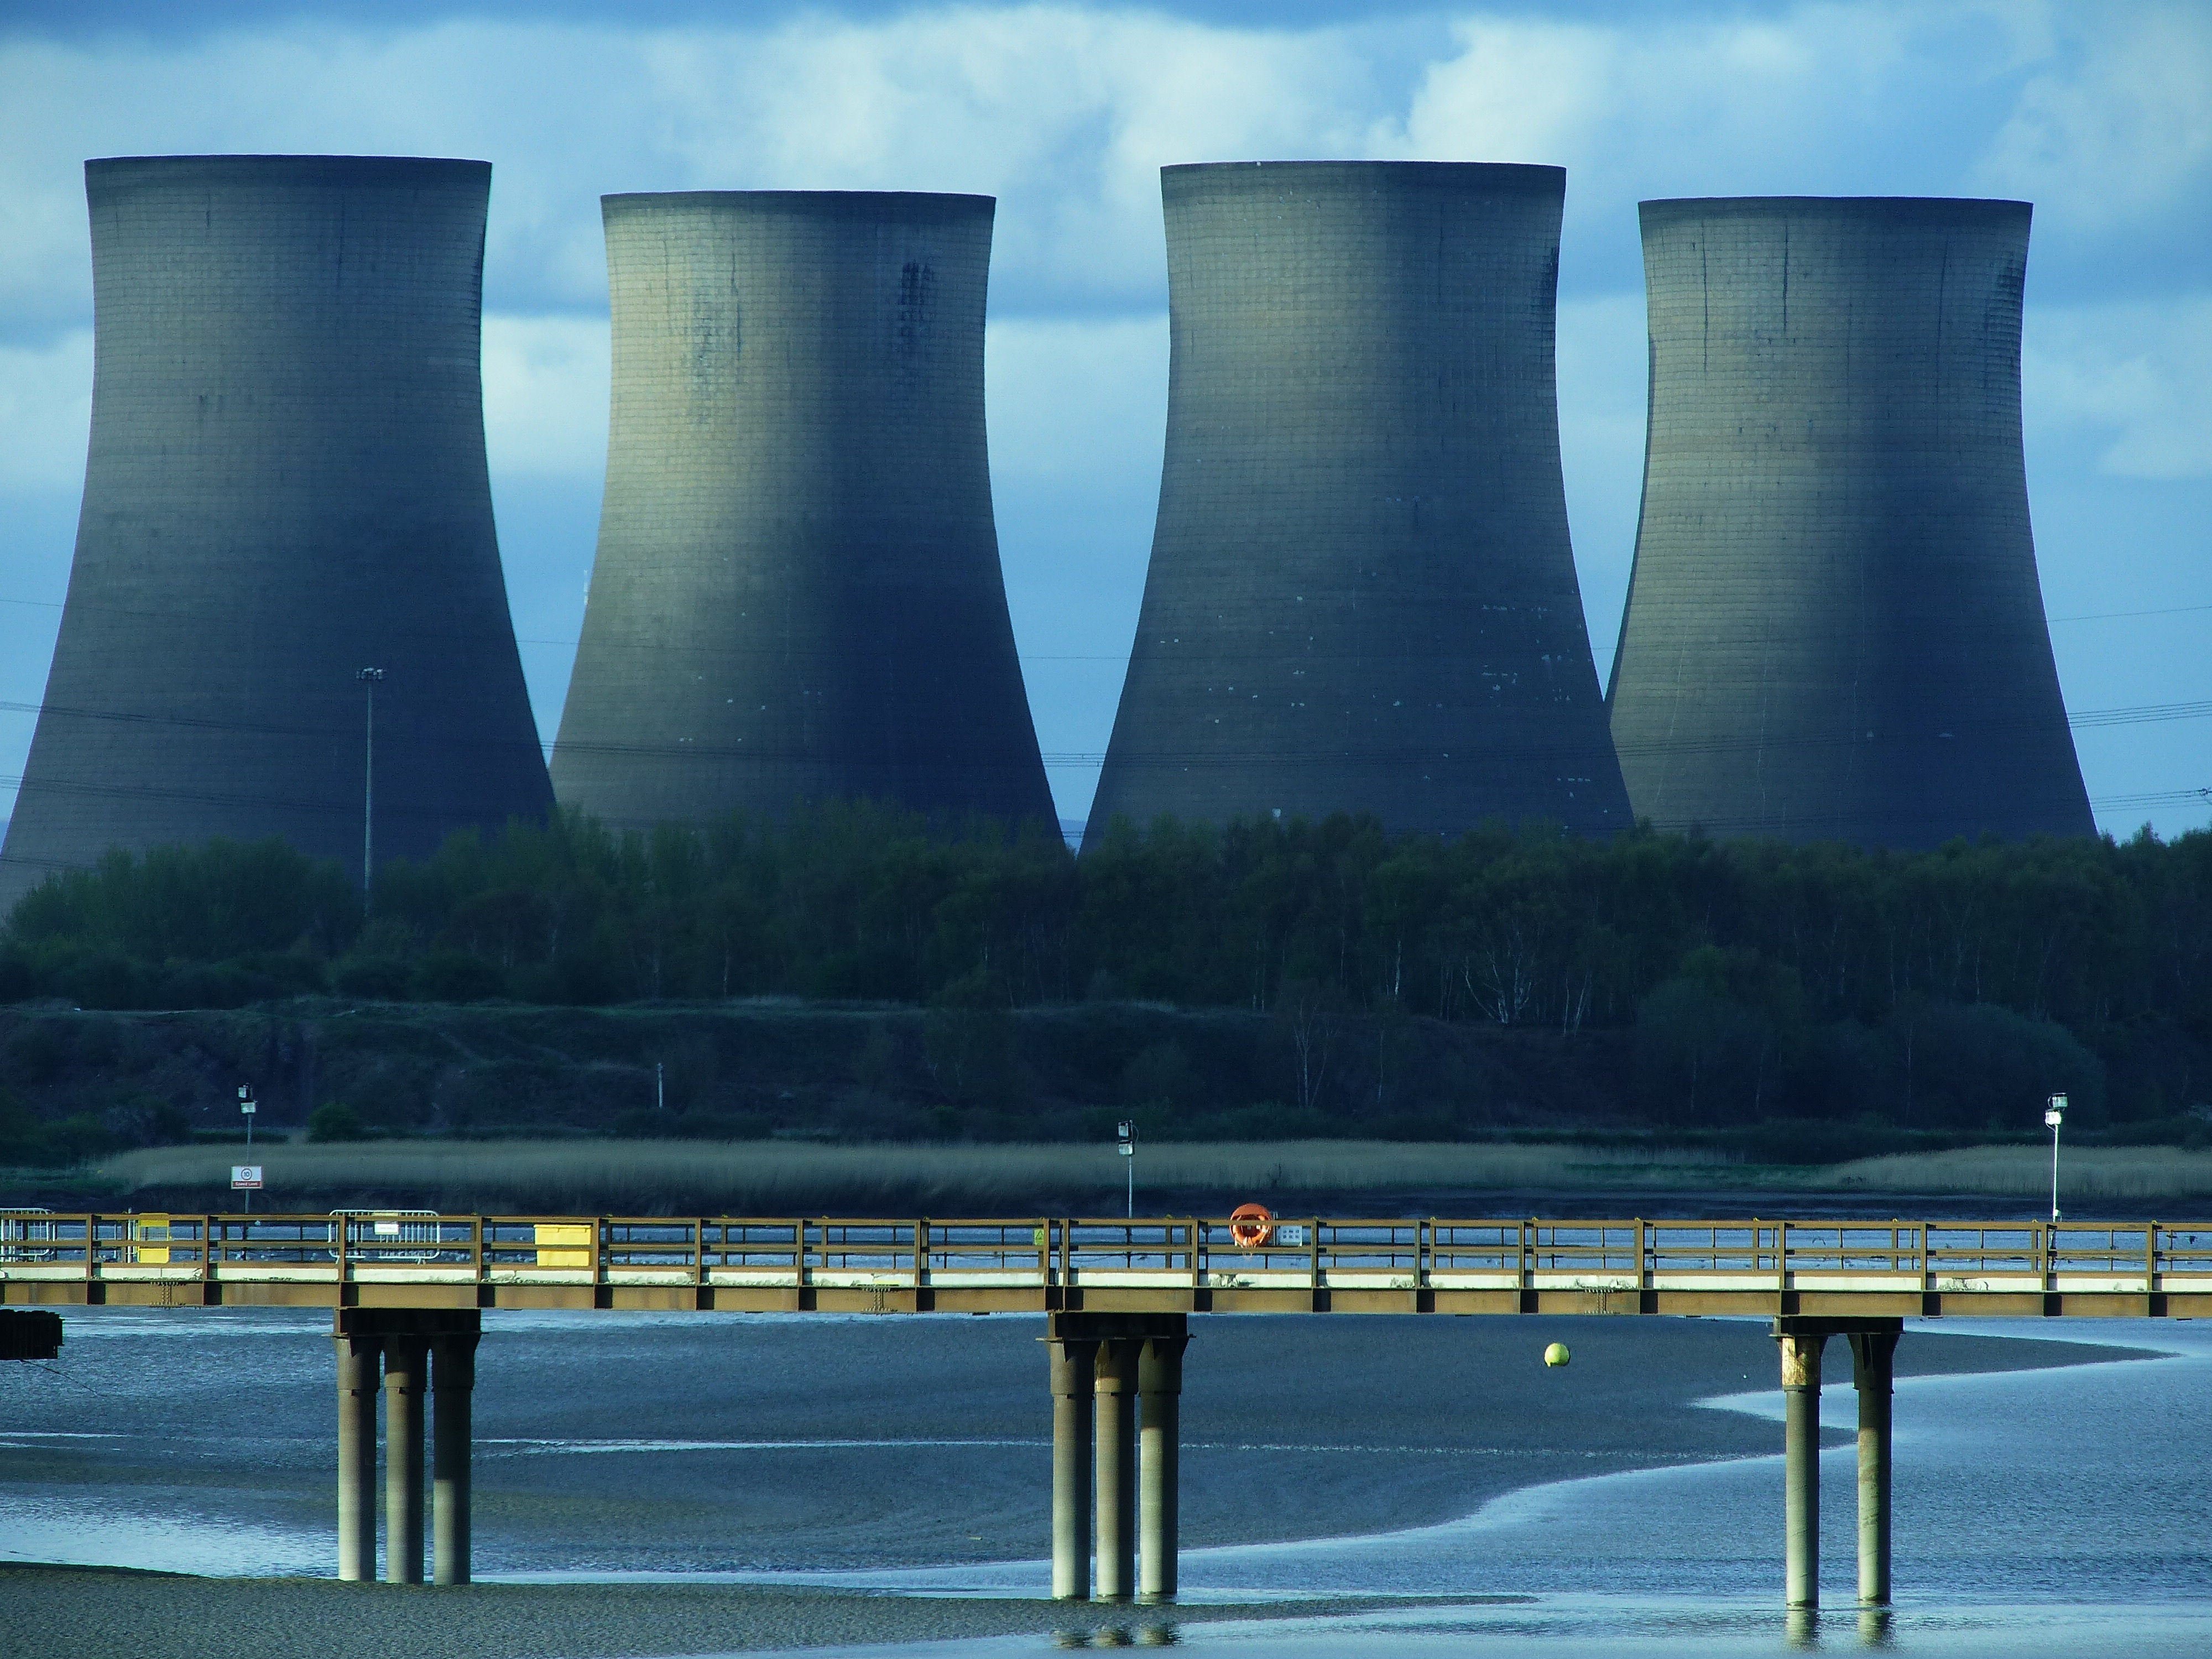 Cooling towers emit steam from a nuclear power generating station.